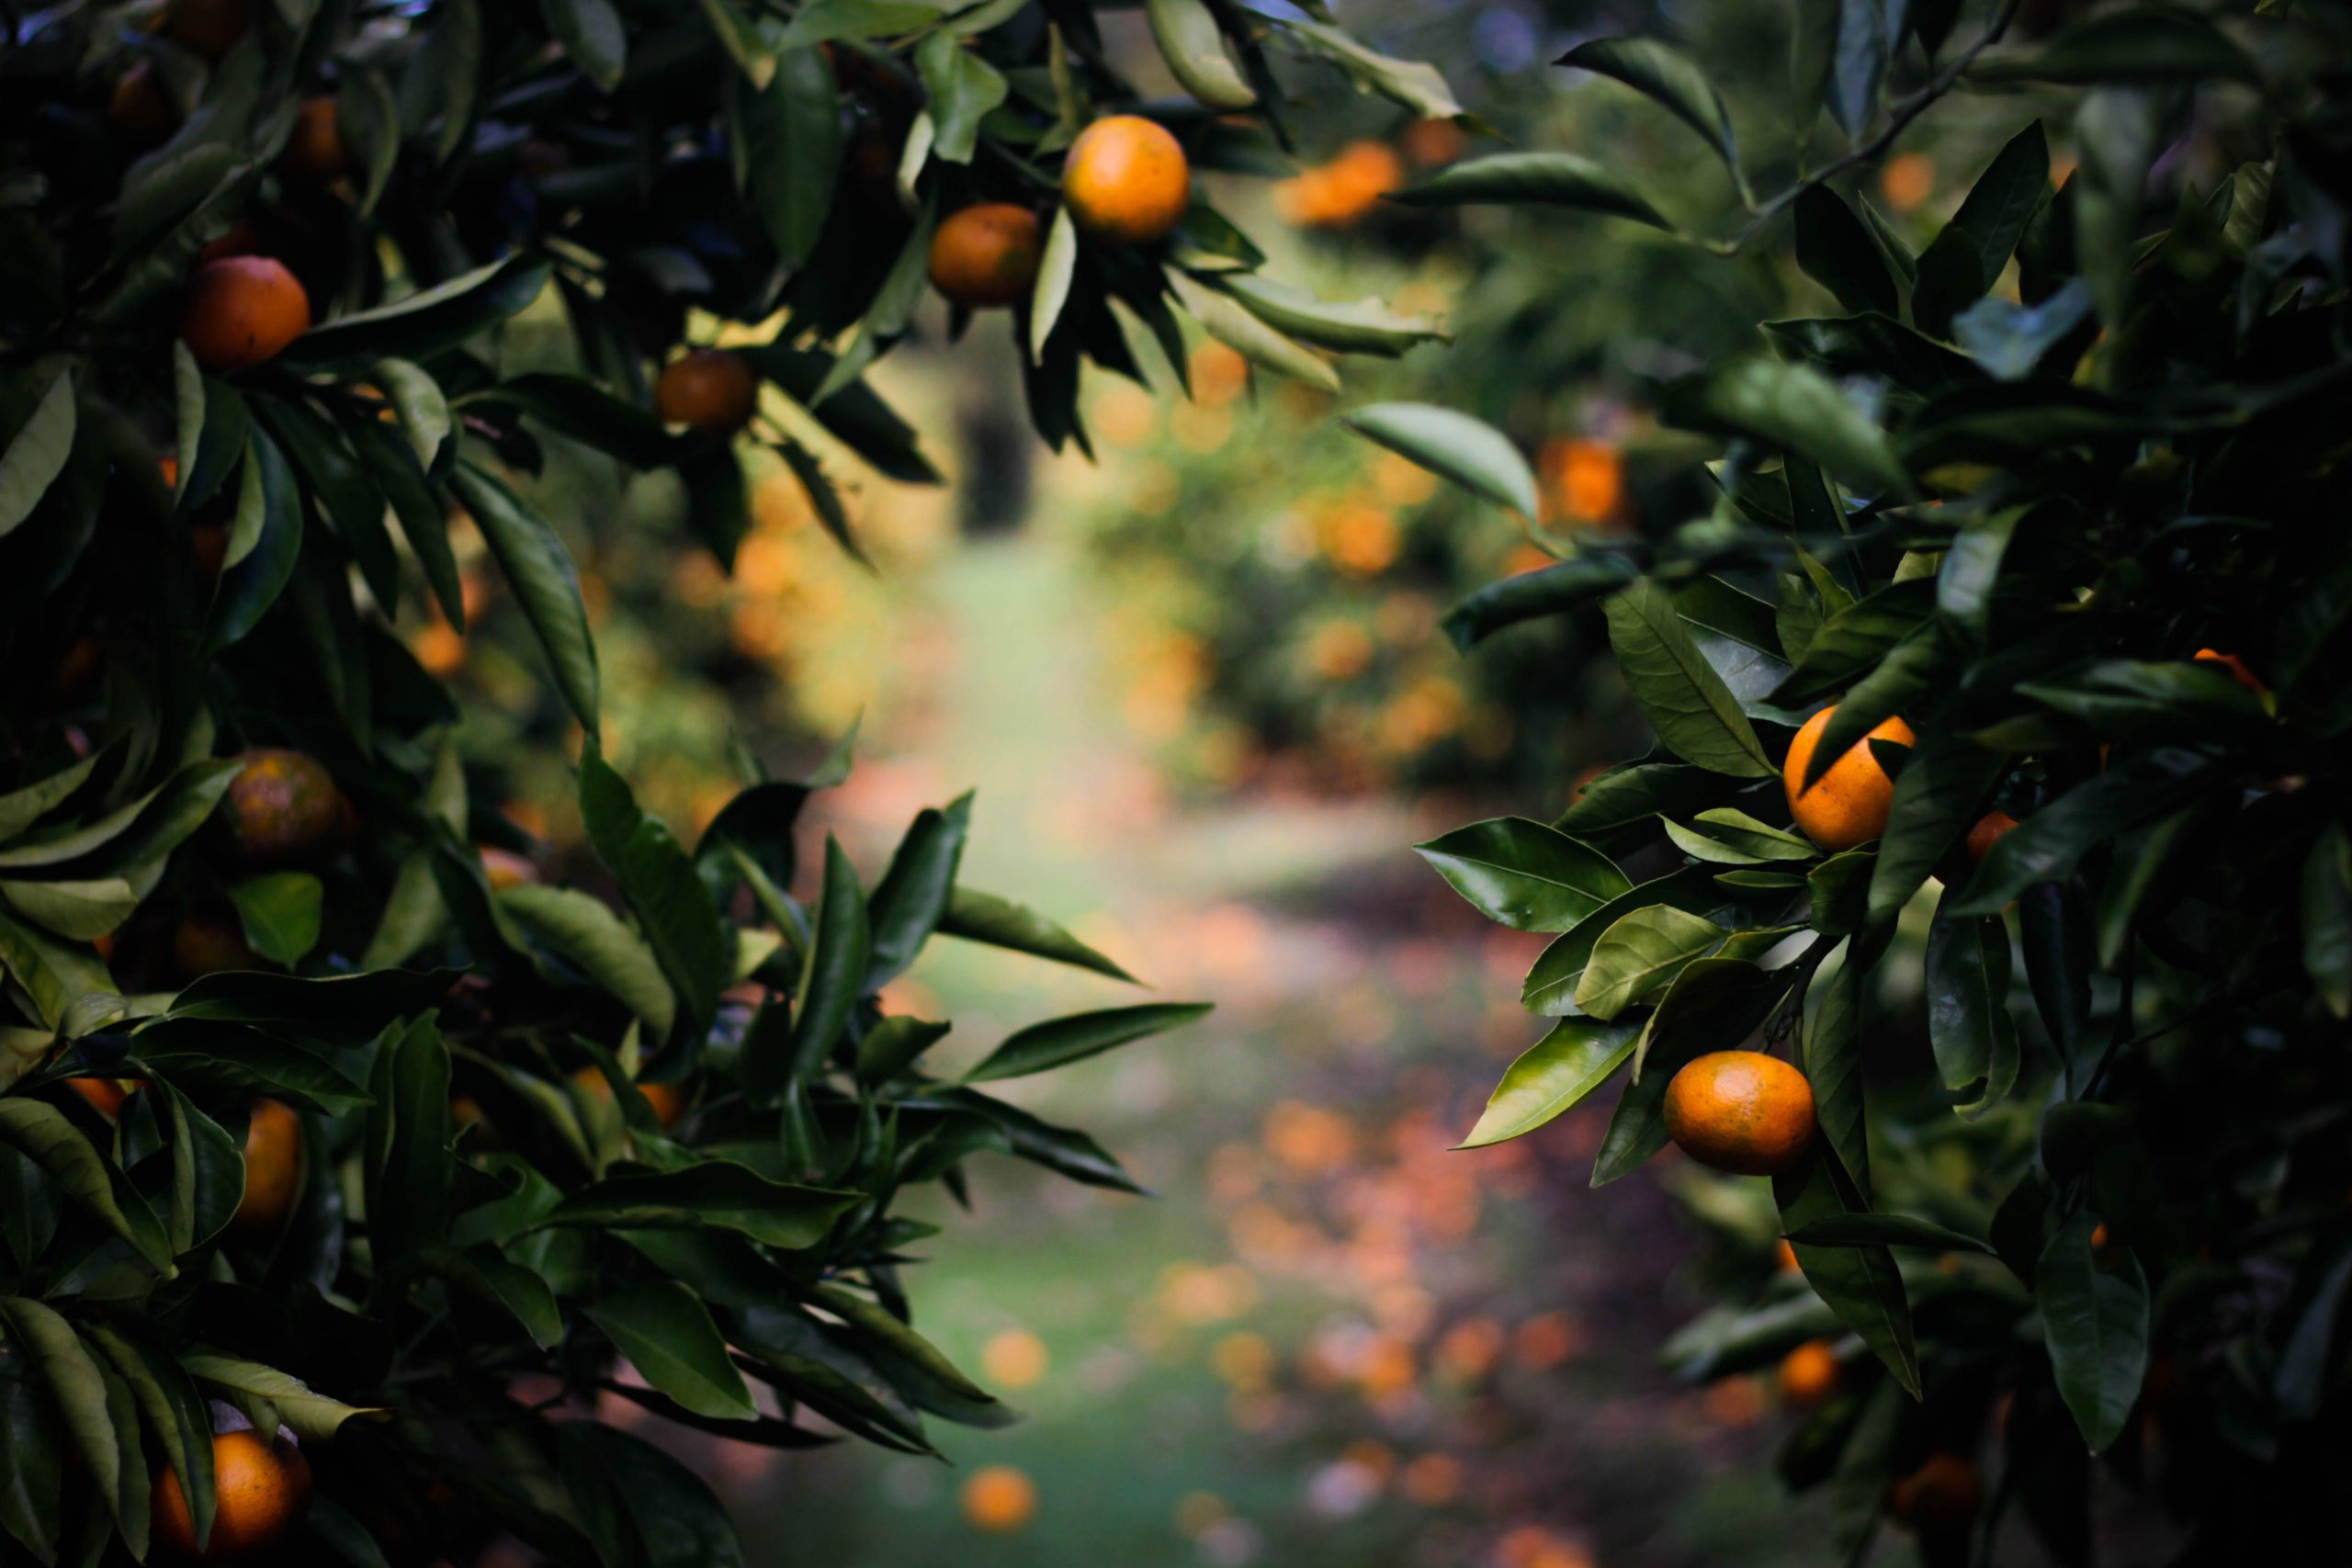 Letter from a future where parks are lined with fruit trees